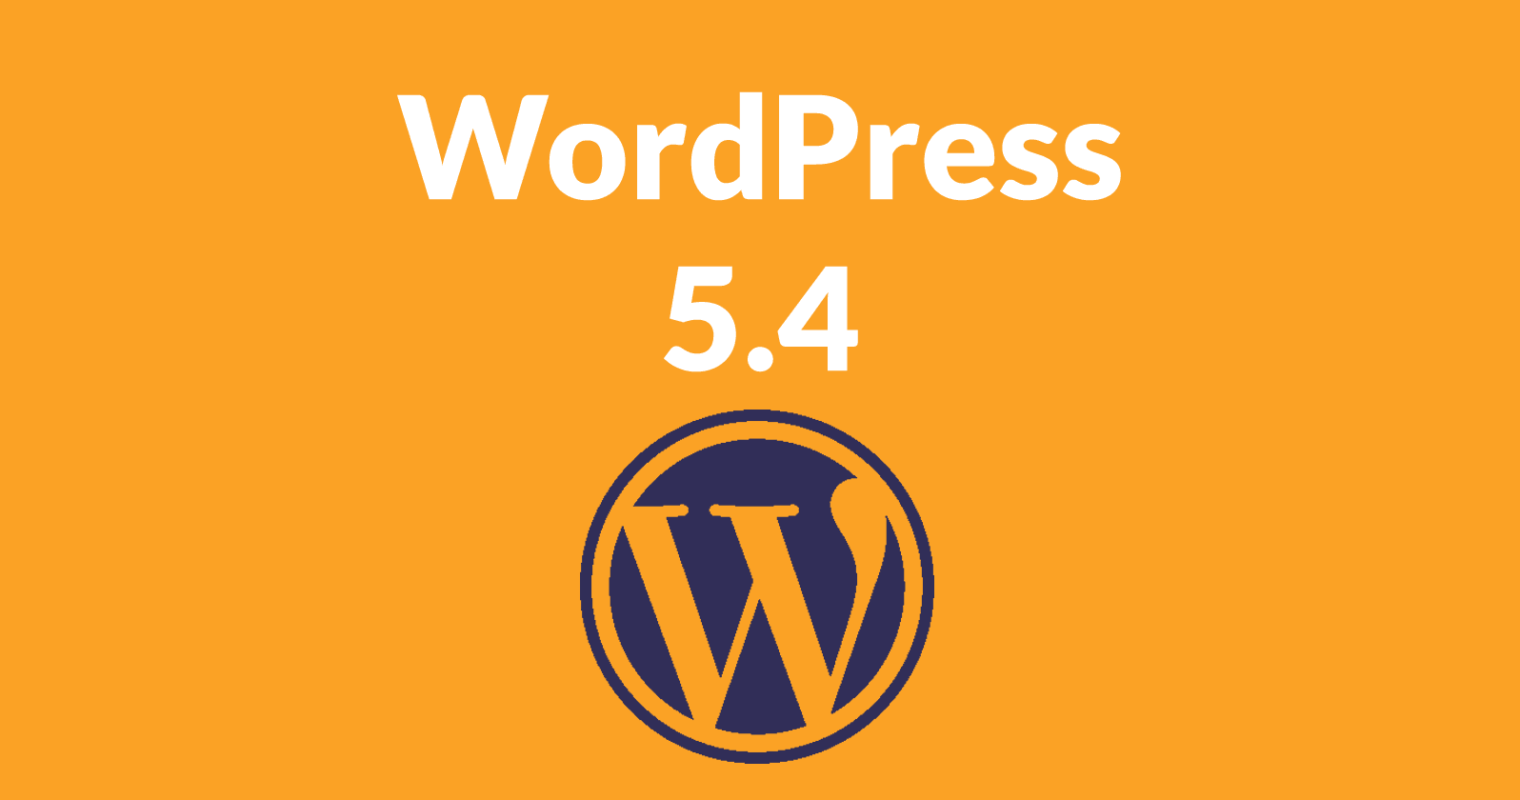 WordPress 5.4 Will Add Lazy-Loading to All Images